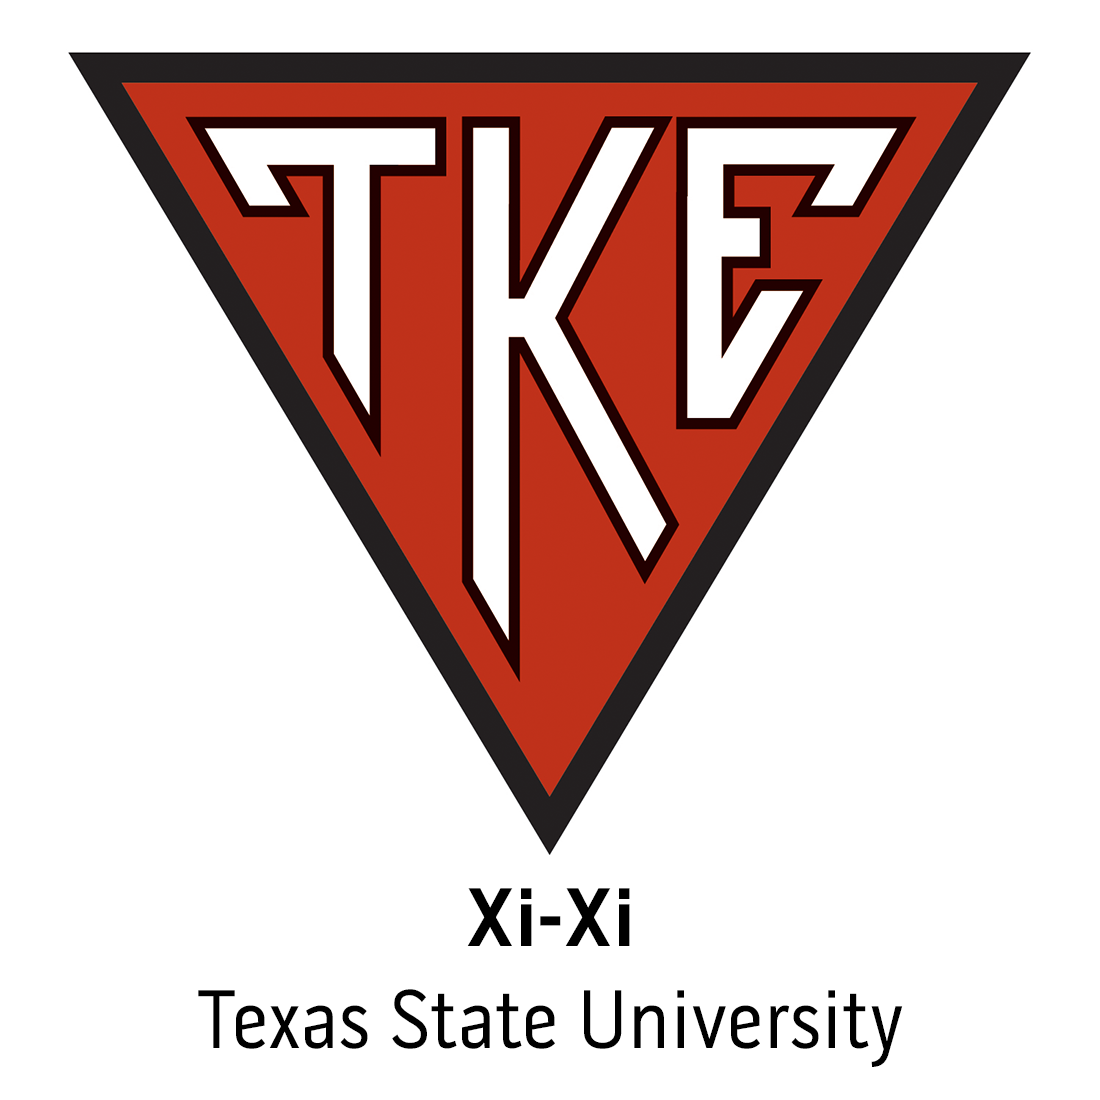 Xi-Xi Chapter at Texas State University